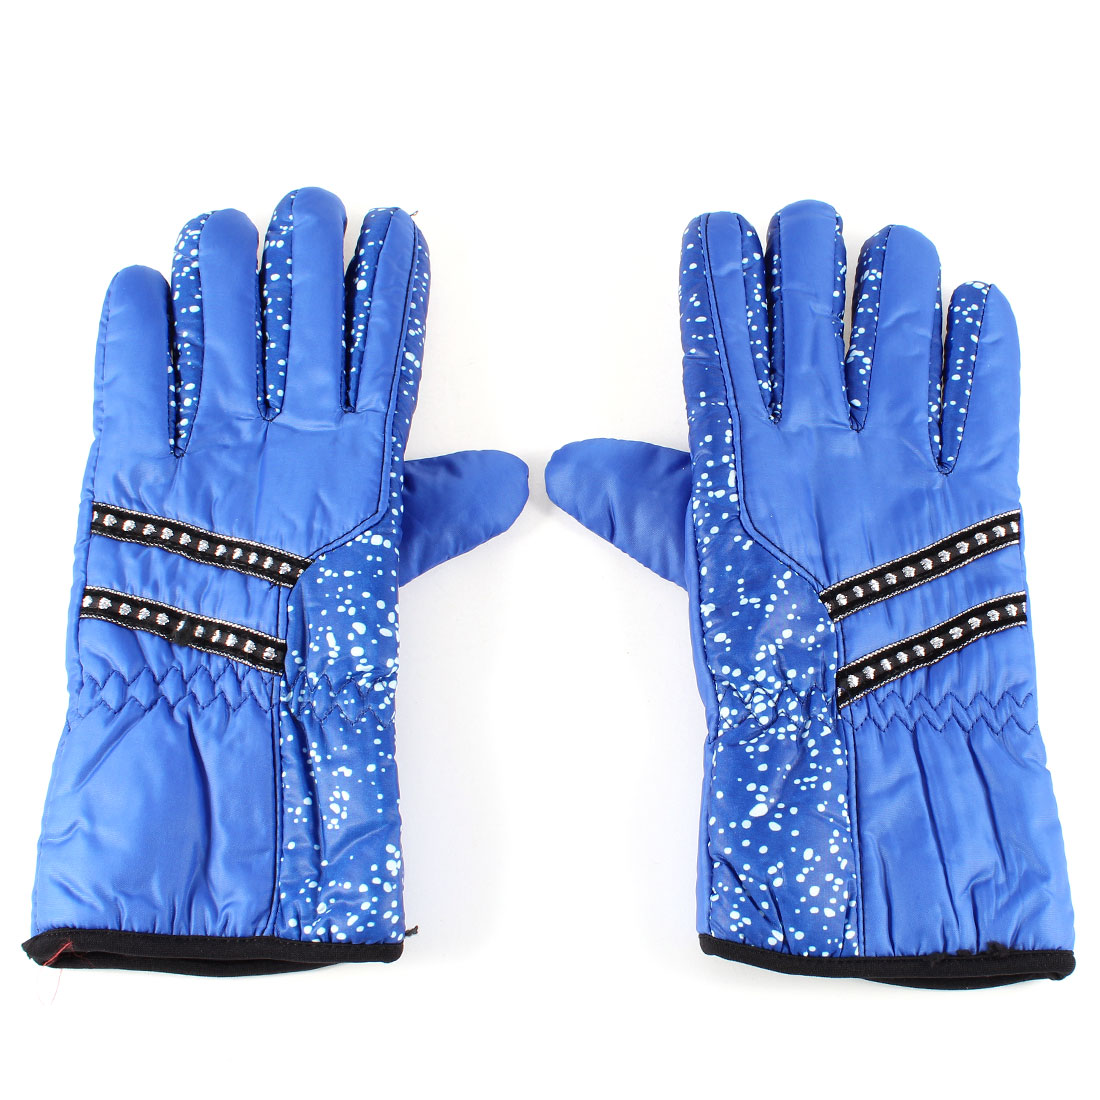 Lady Winter Outdoor Cycling Polyester Full Finger Warm Gloves Pair Blue